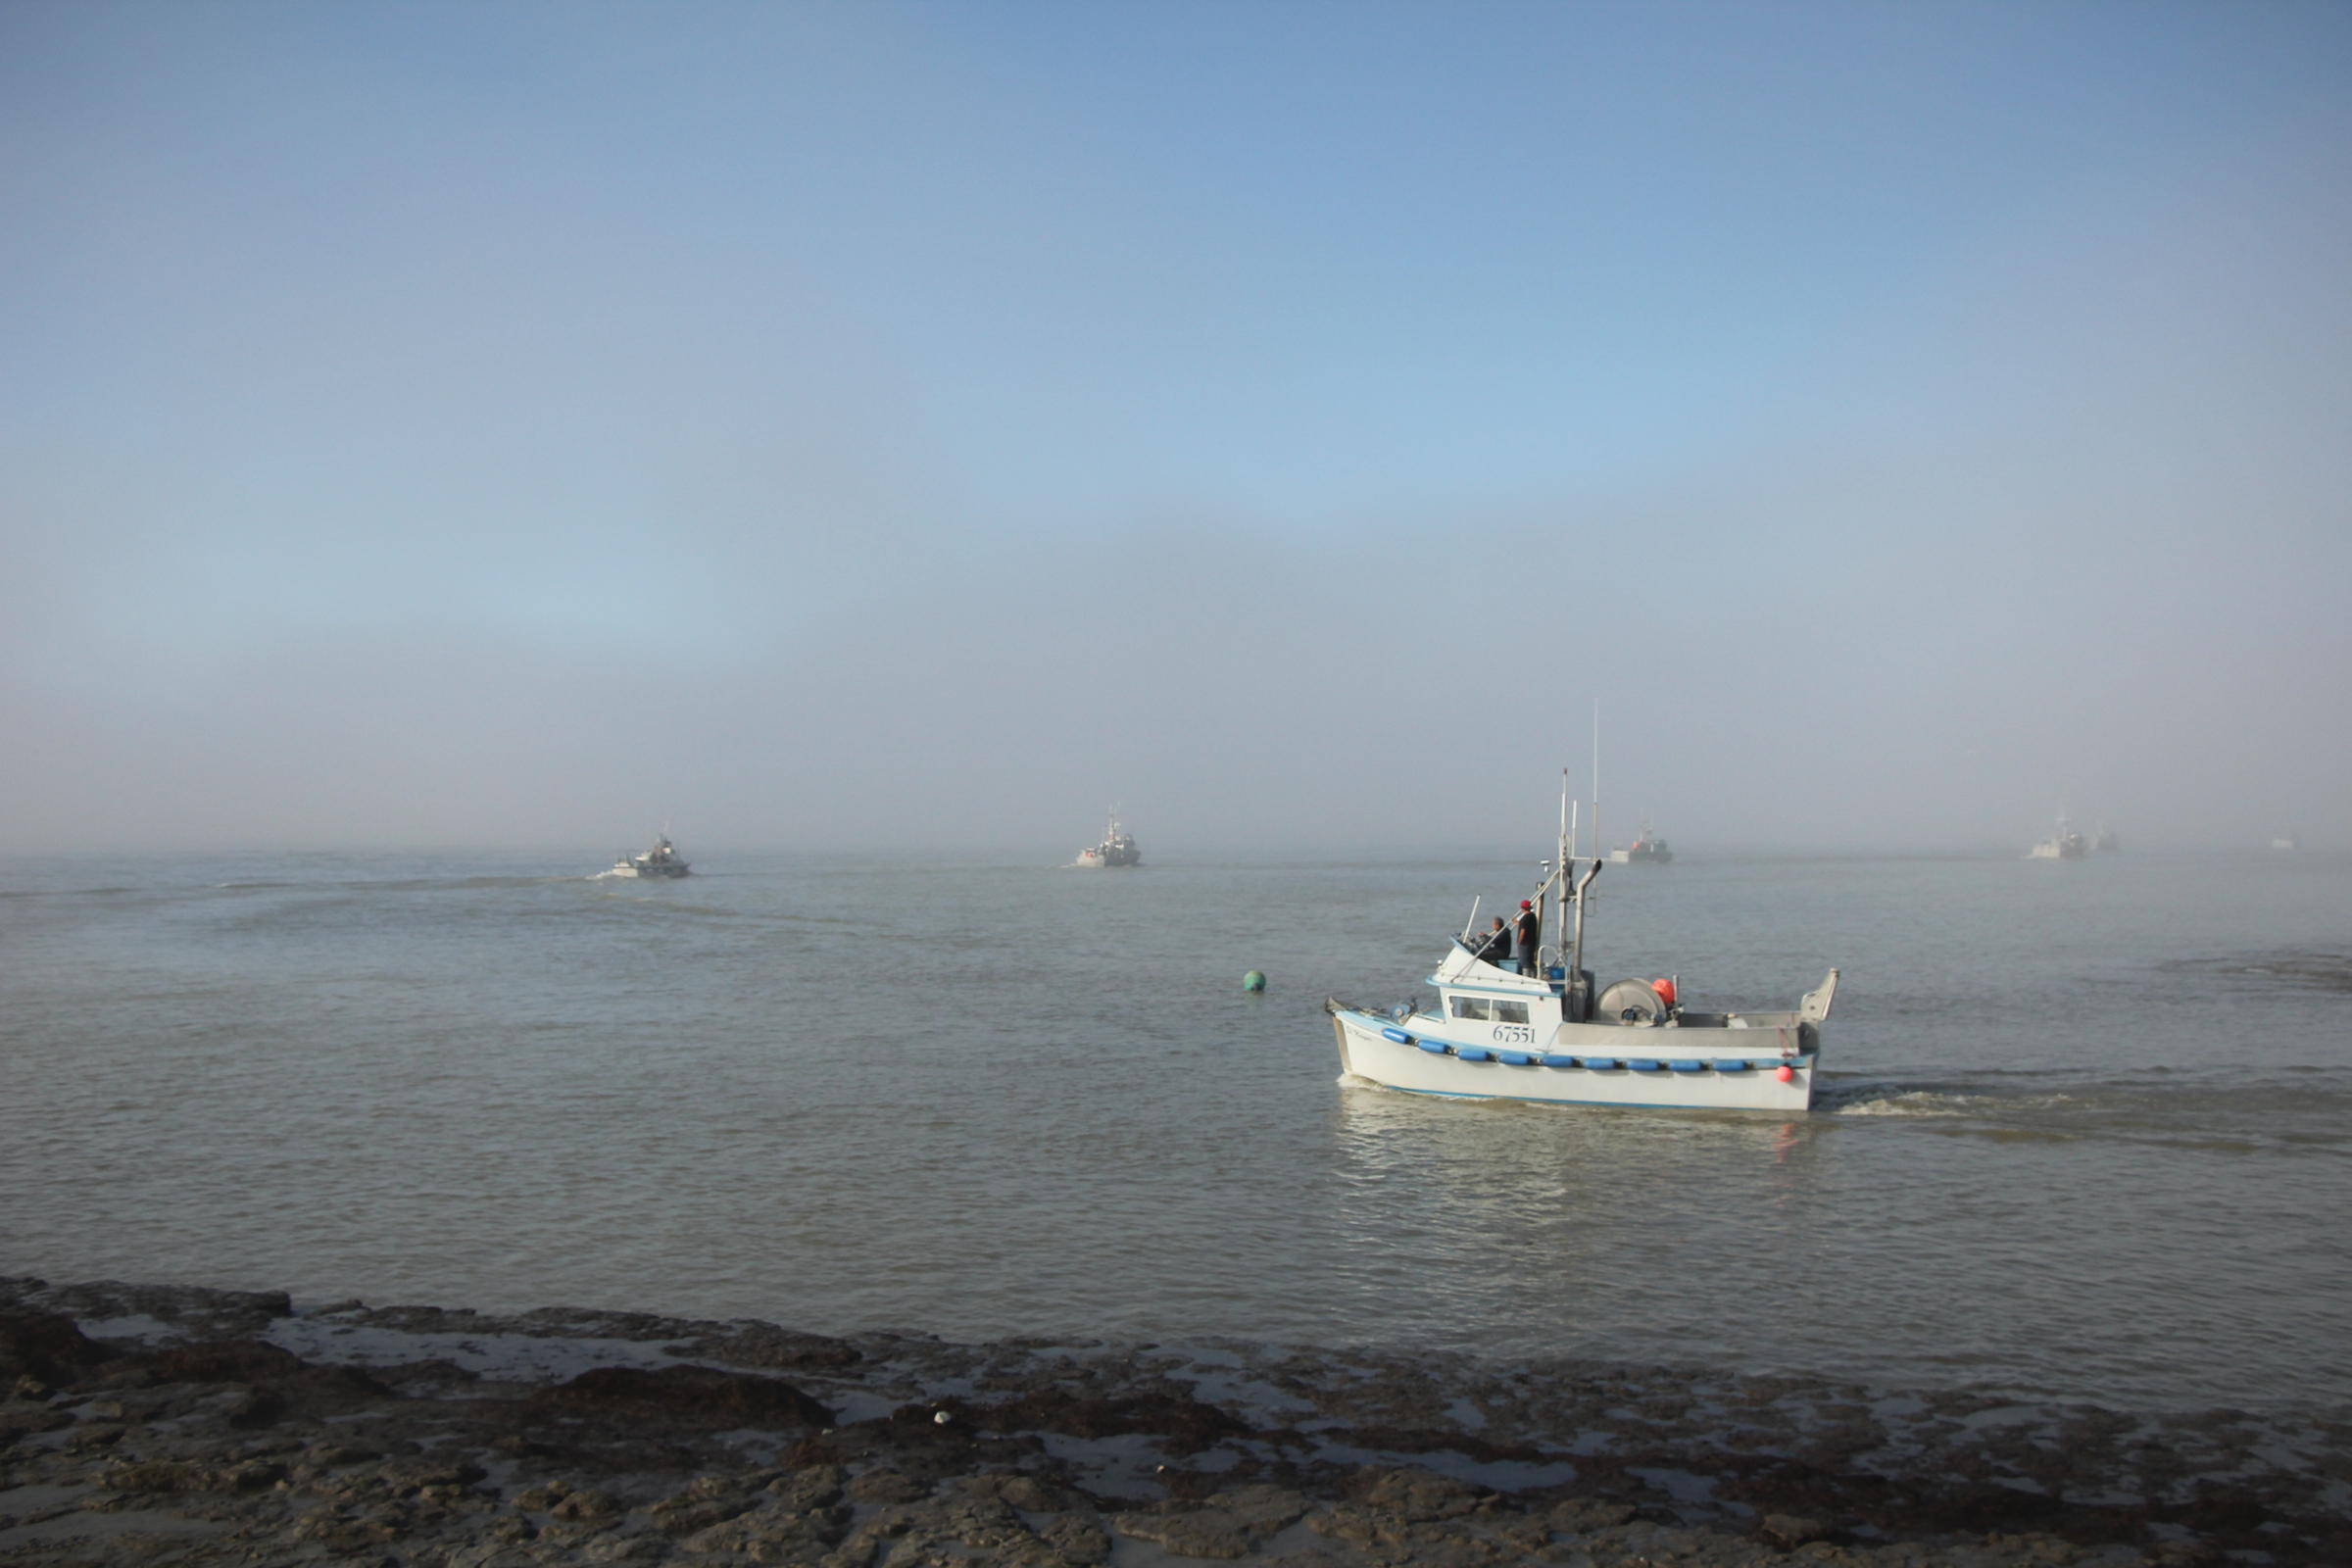 Boats leave Dillingham to fish the Nushagak District in June 2016. The story of Bristol Bay's harvesters and fishing communities will be key to the new Bristol Bay sockeye branding effort, which will launch in Boulder this fall. (Photo by Cate Gomez, KDLG - Dillingham)